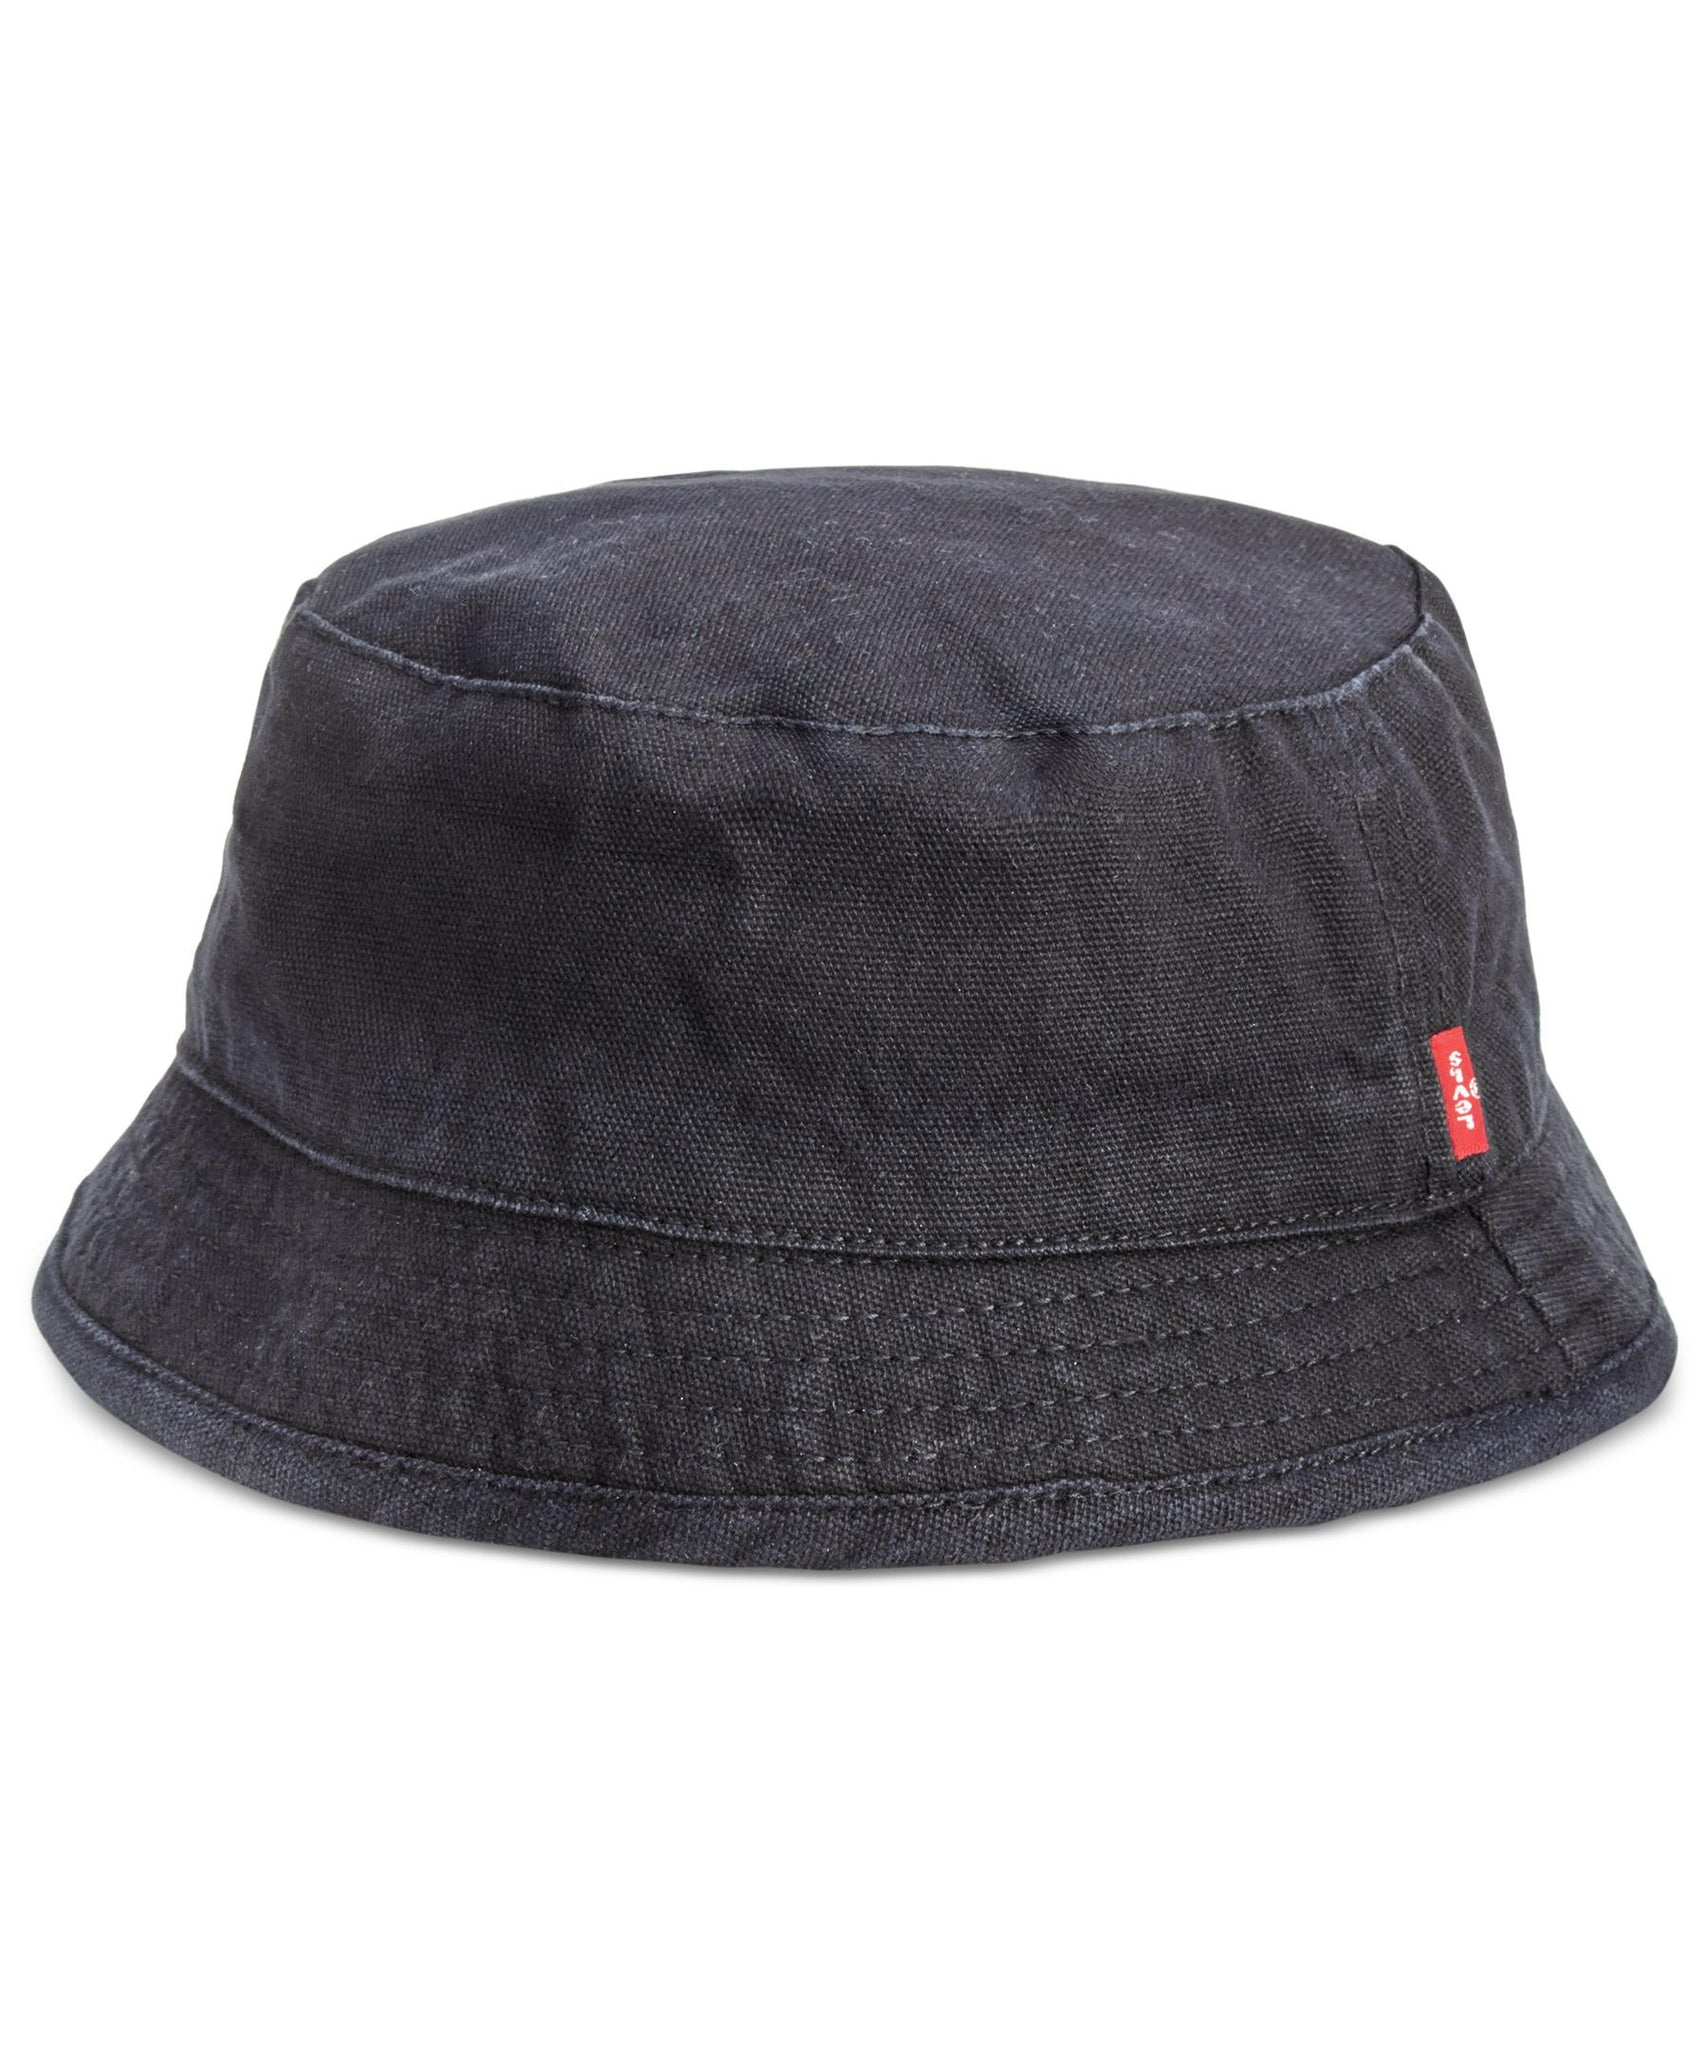 Levi's Reversible Bucket Hat